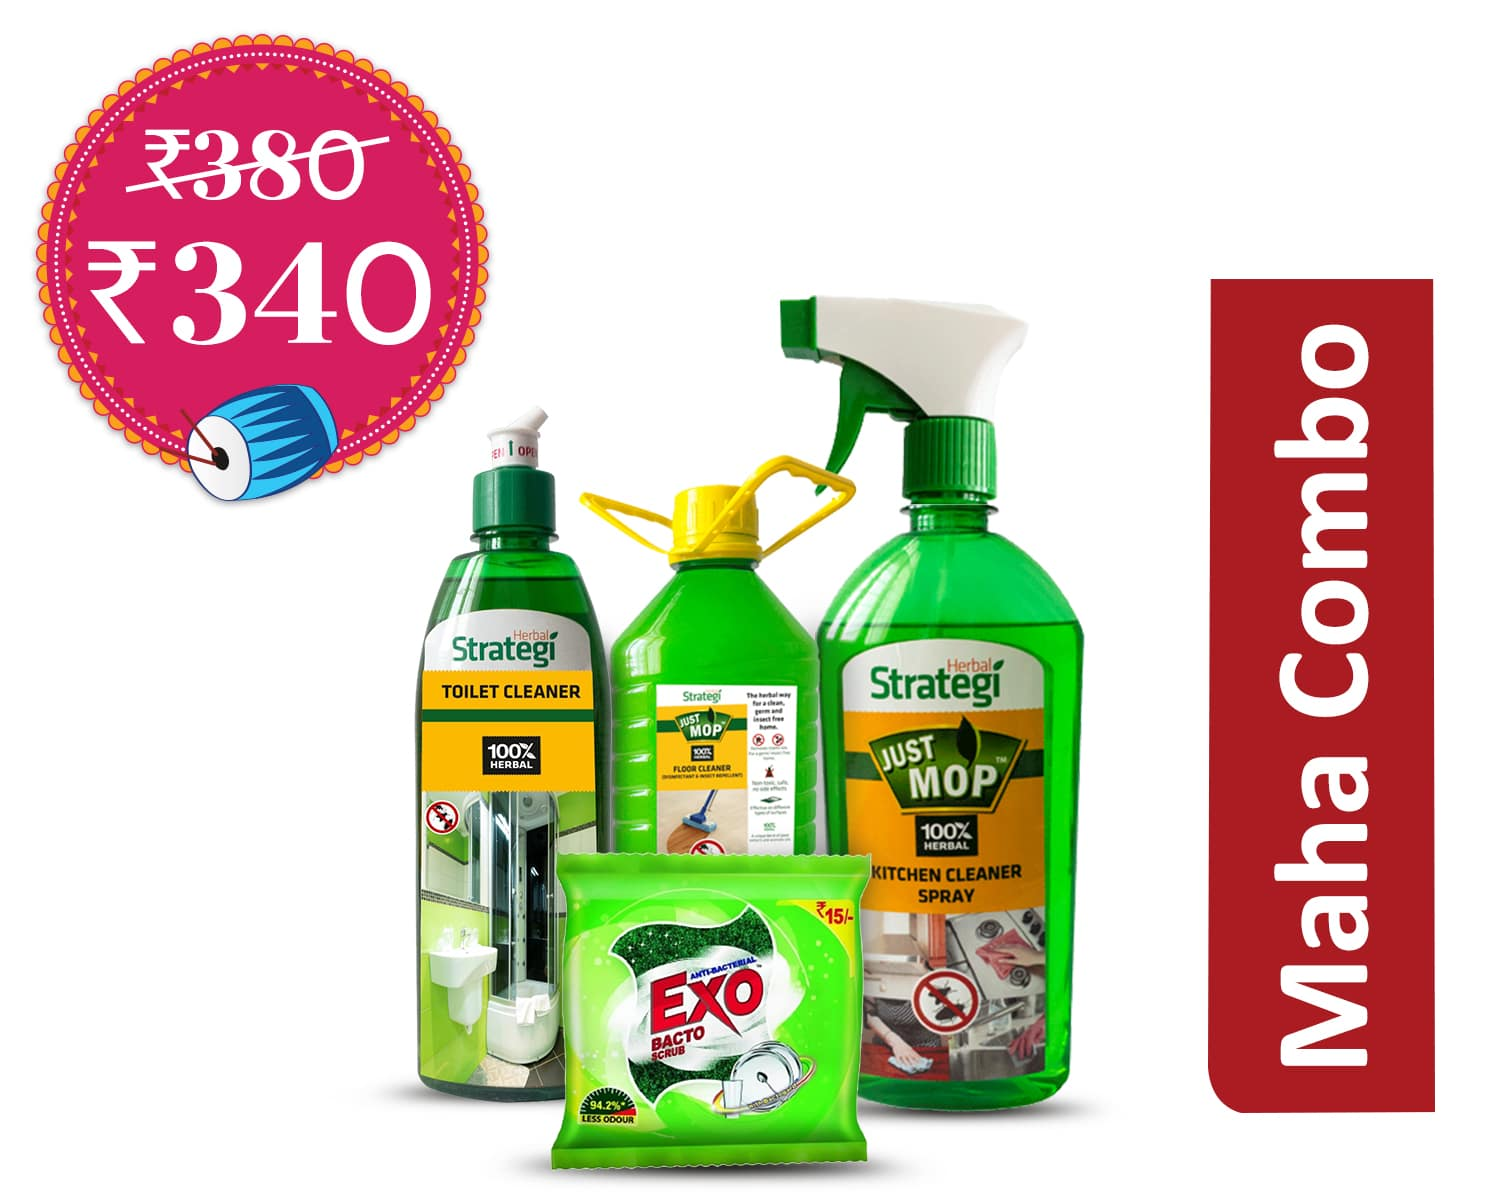 Supreme Cleaning Combo (1Unit): Herbal Disinfectant, Floor cleaner & Insect Repellent 500 ml + Herbal Kitchen cleaner,Disinfectant & Insect Repellent 500 ml + Herbal Toilet Disinfectant & Cleaner 500 ml + EXO ANTI BACTERIAL BACTO SCRUB 15/- * 3